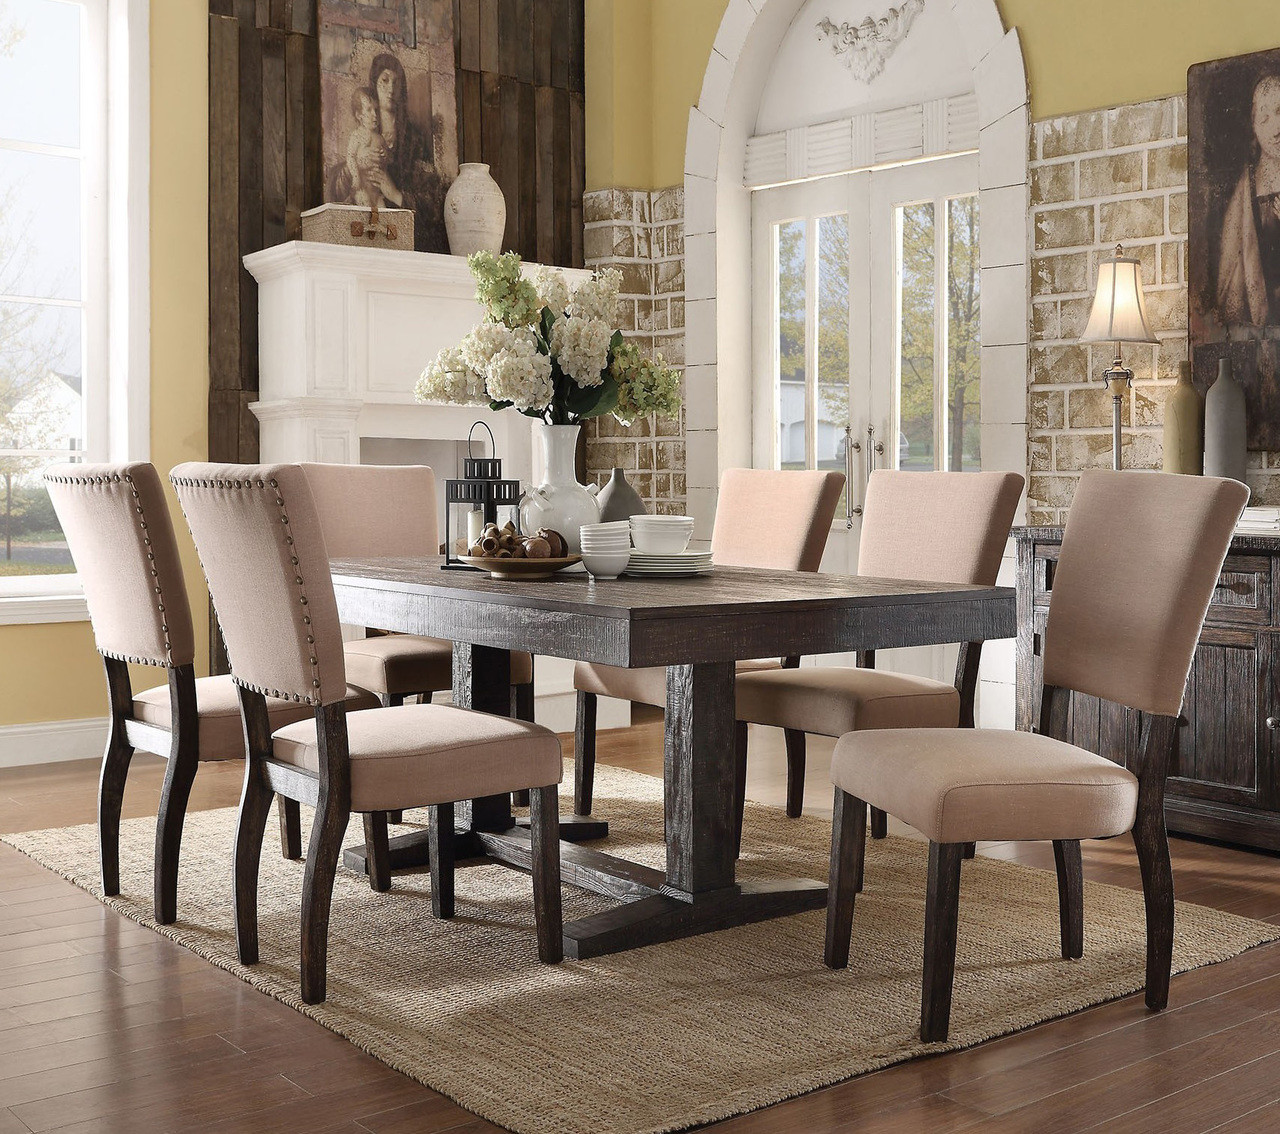 Rooms To Go Dining Room Set: ACME 71710 Salvaged Oak Dining Room Table Set